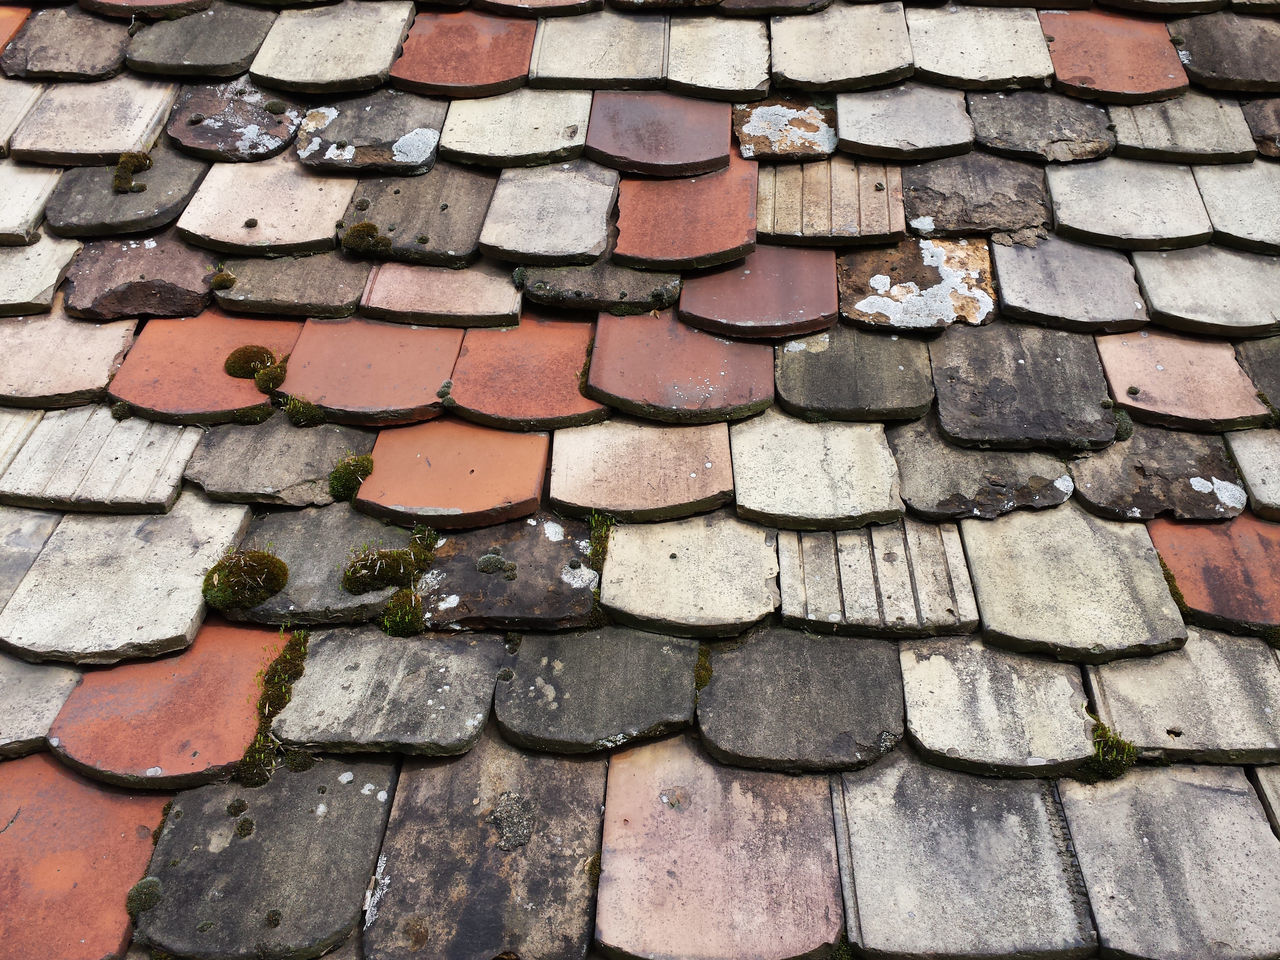 Roof Adobe Architecture Backgrounds Bildfolge Close-up Day Detail Full Frame House Decoration No People Old Outdoors Photography Roof Pans Stone Tile